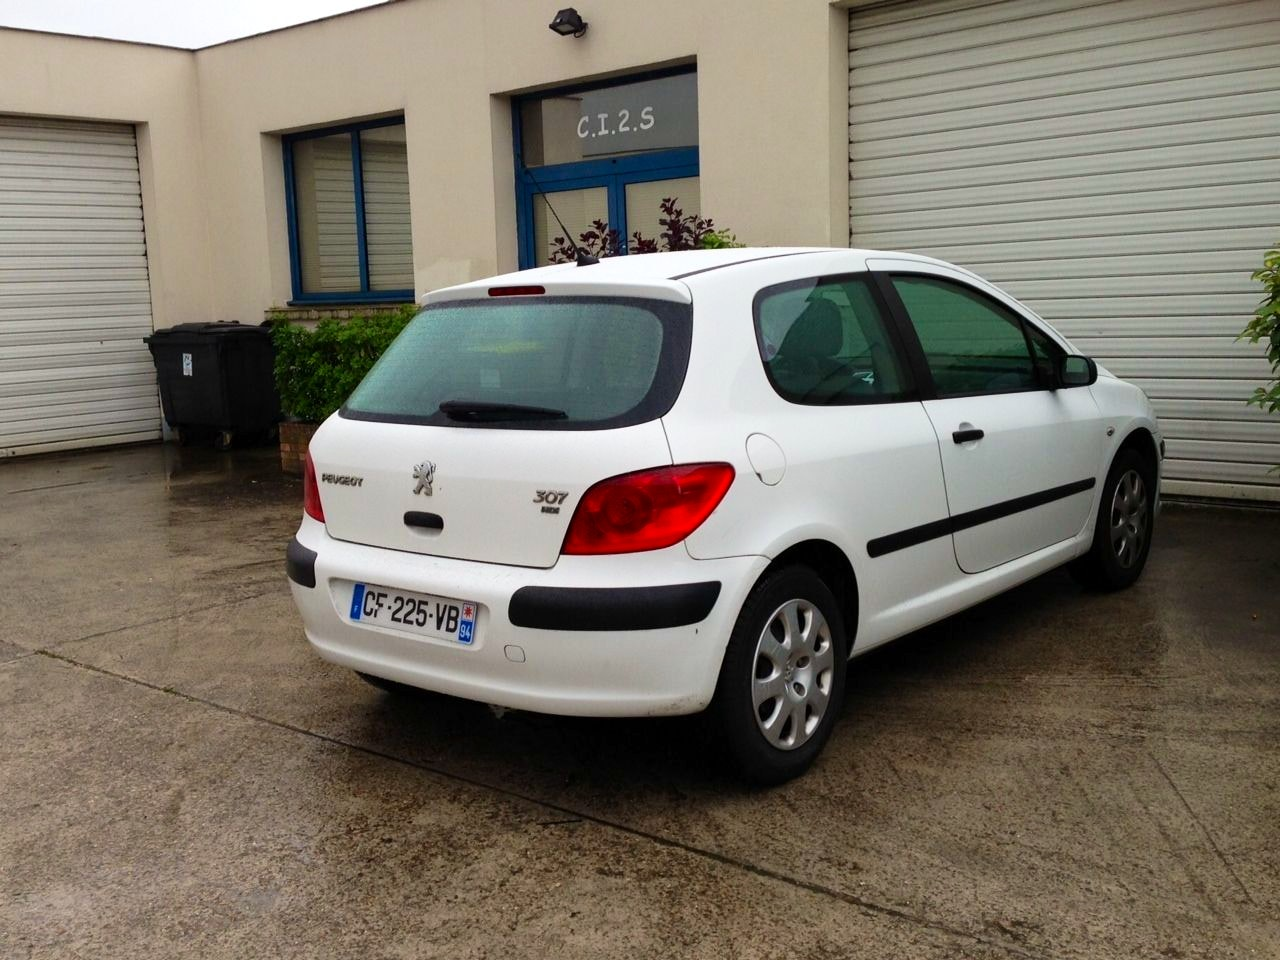 Peugeot 307 hdi pack clim 2 places, 2006